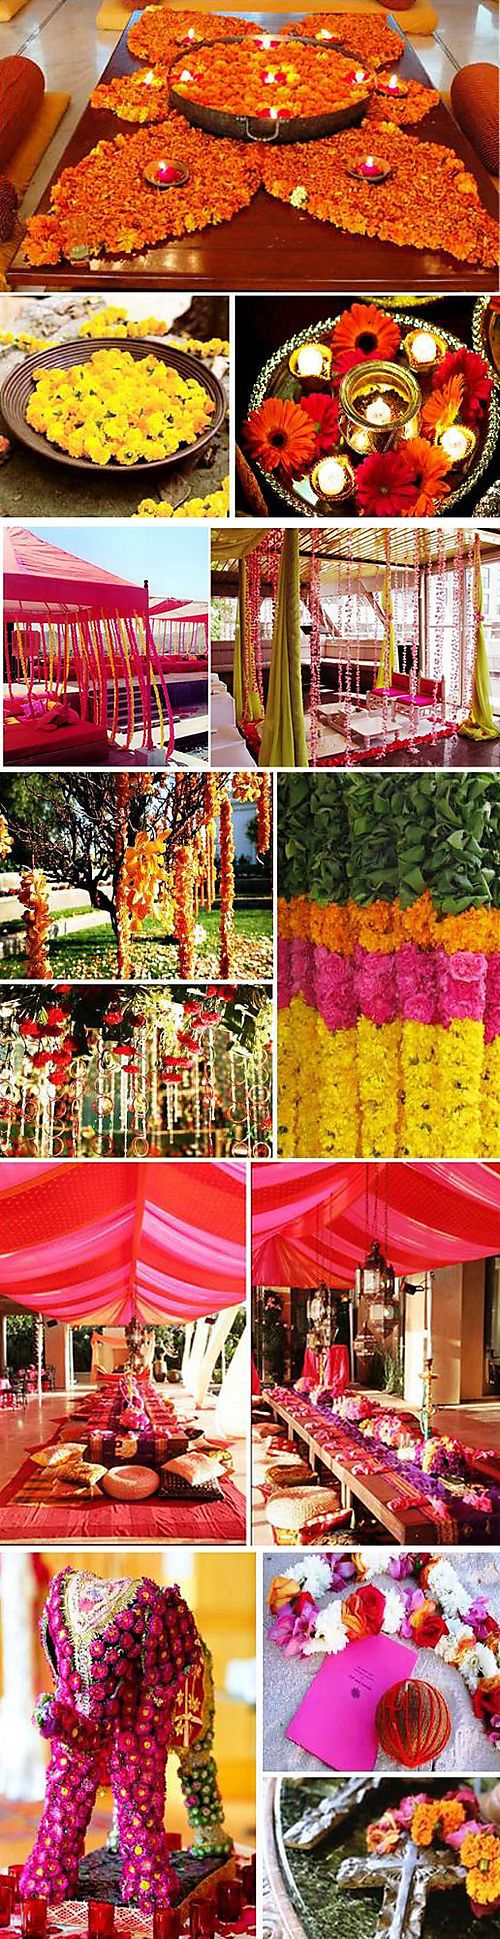 Indian Wedding decorating ideas. #IndianWeddings | #Decoration